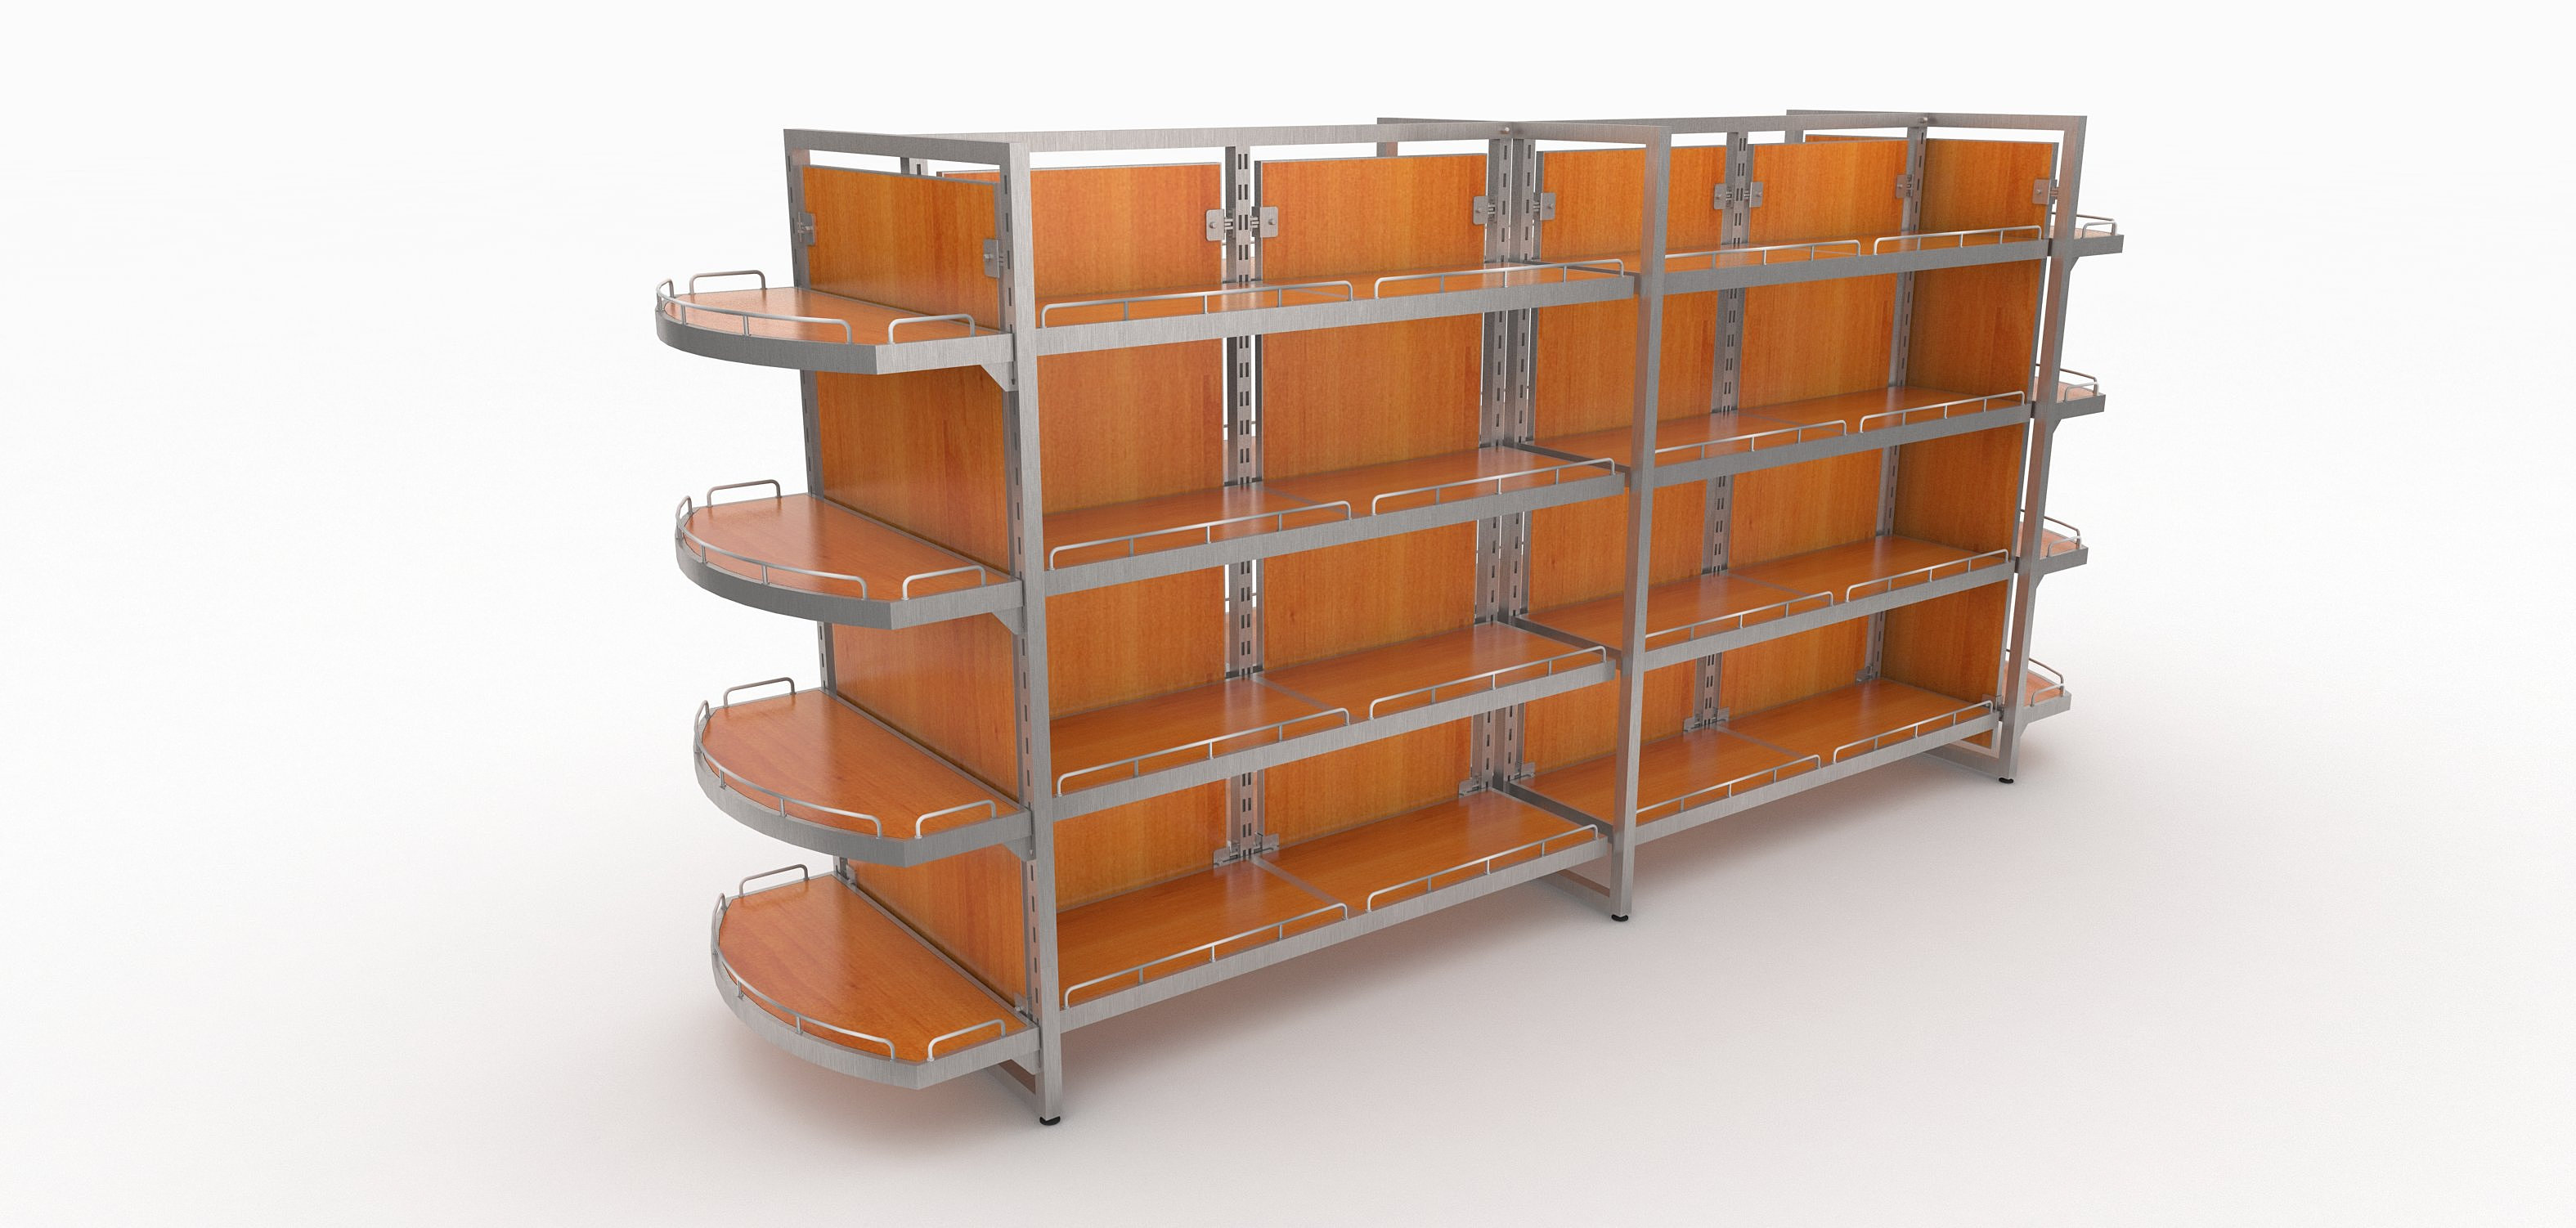 Shop Design Modular Retail System